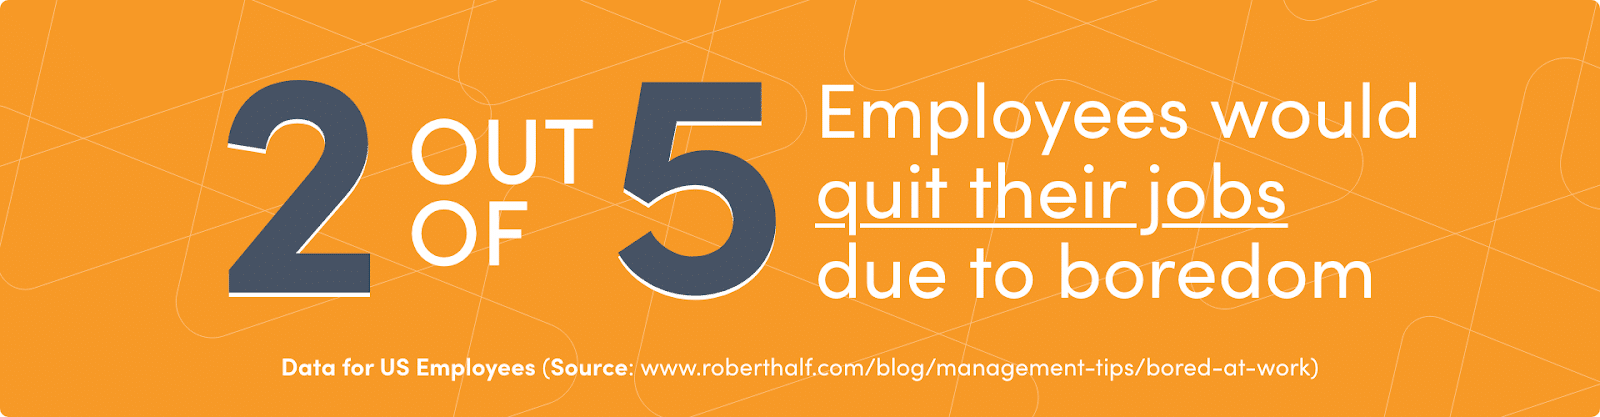 2 of 5 employees would quit their jobs due to boredom